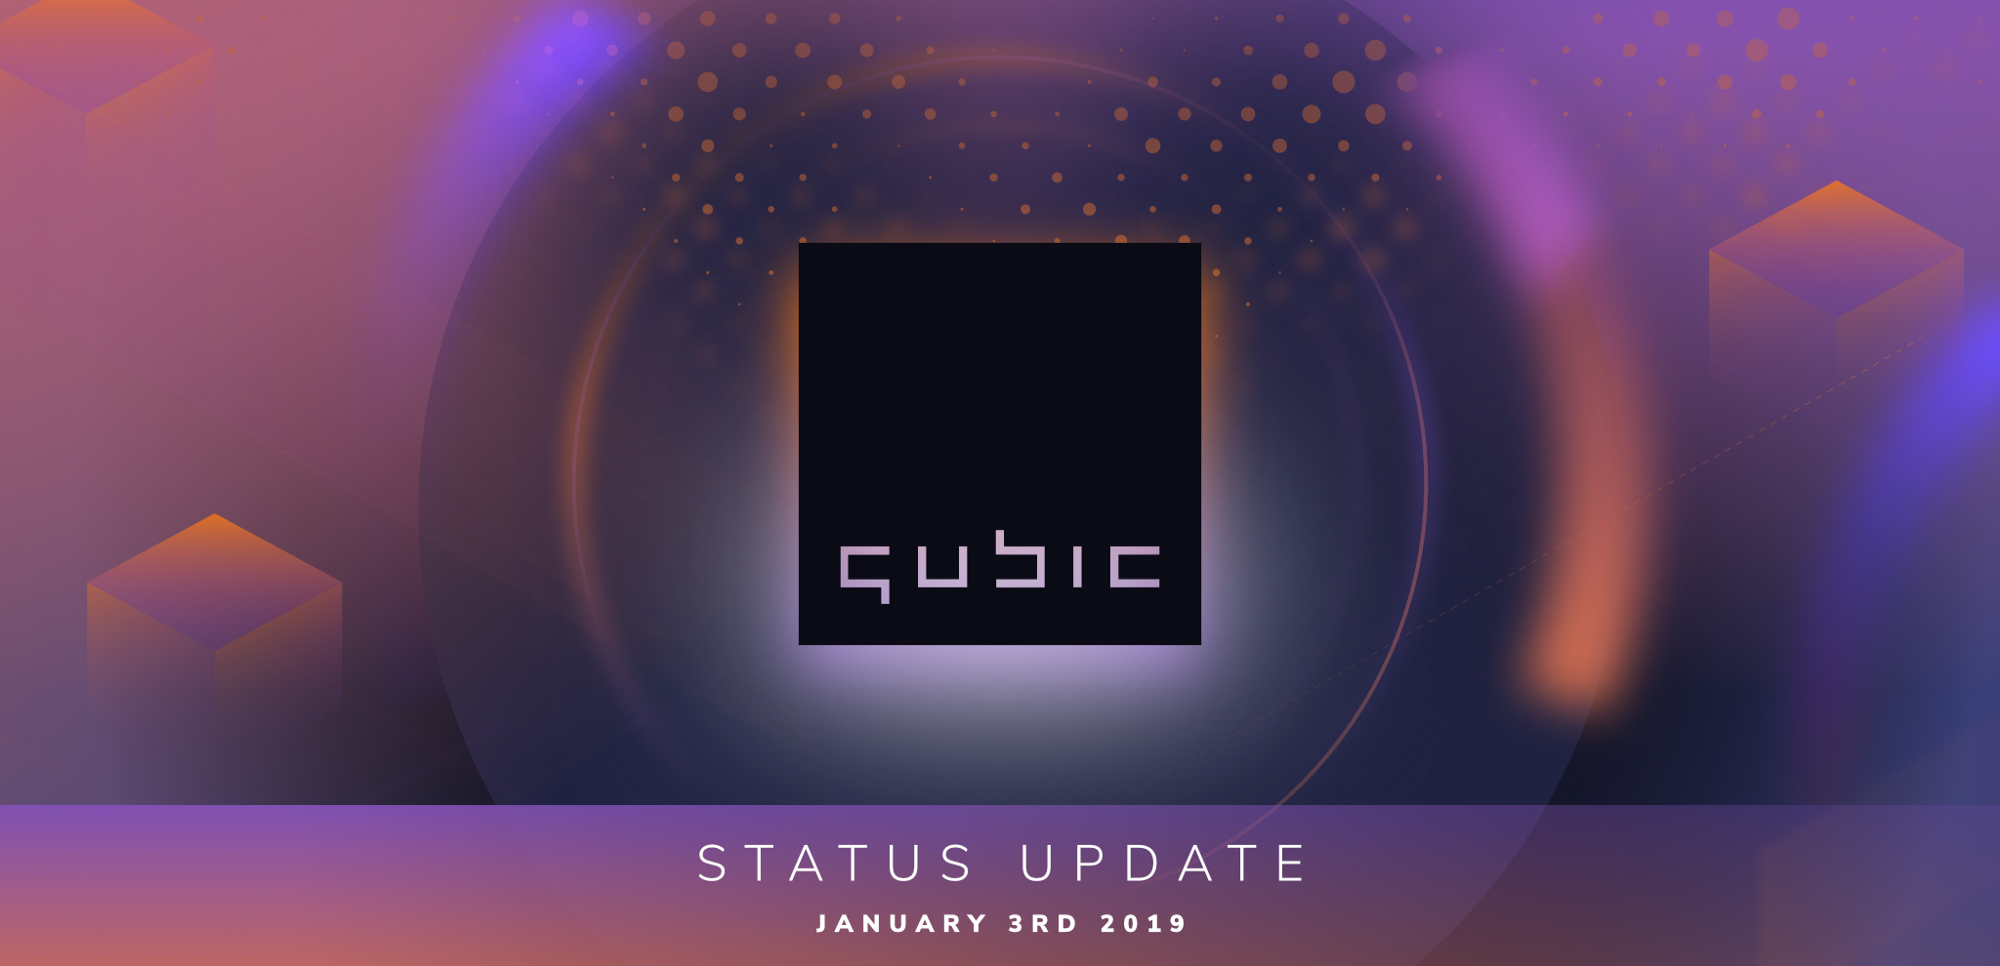 Qubic status update January 3rd, 2019